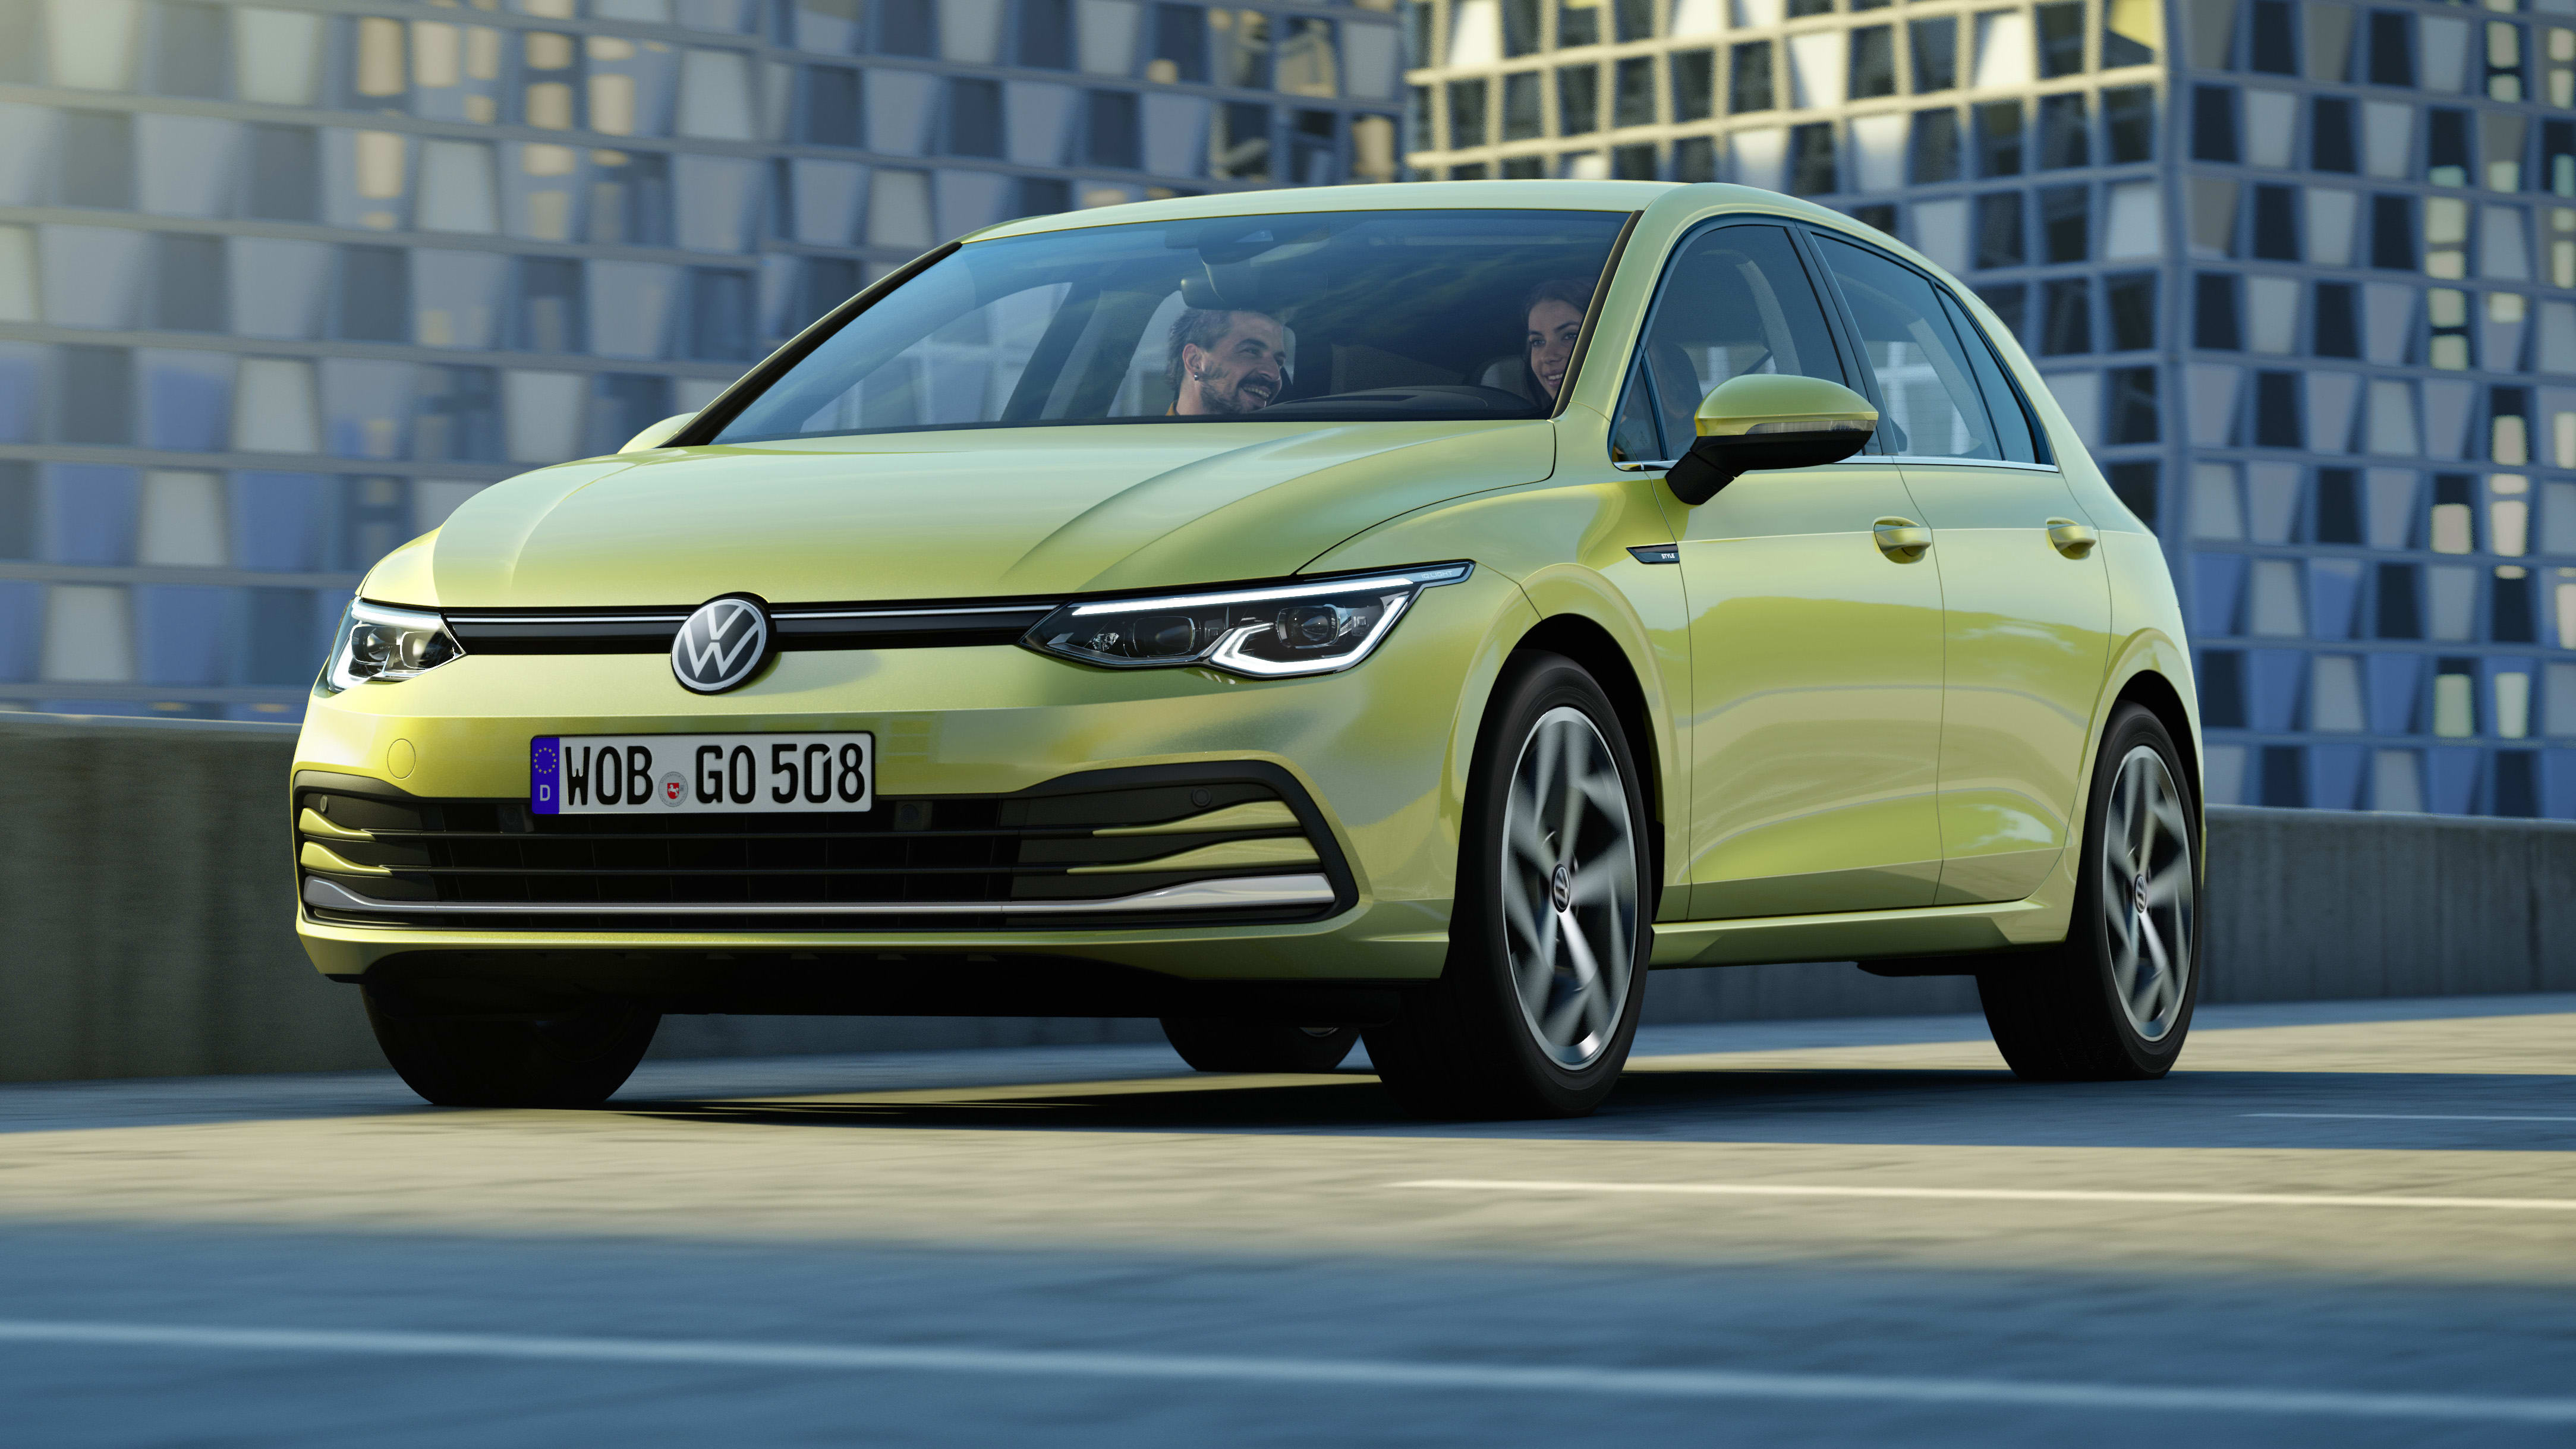 New generation Volkswagen Golf just around the corner with refined looks, more tech and added safety but with hefty price increases.